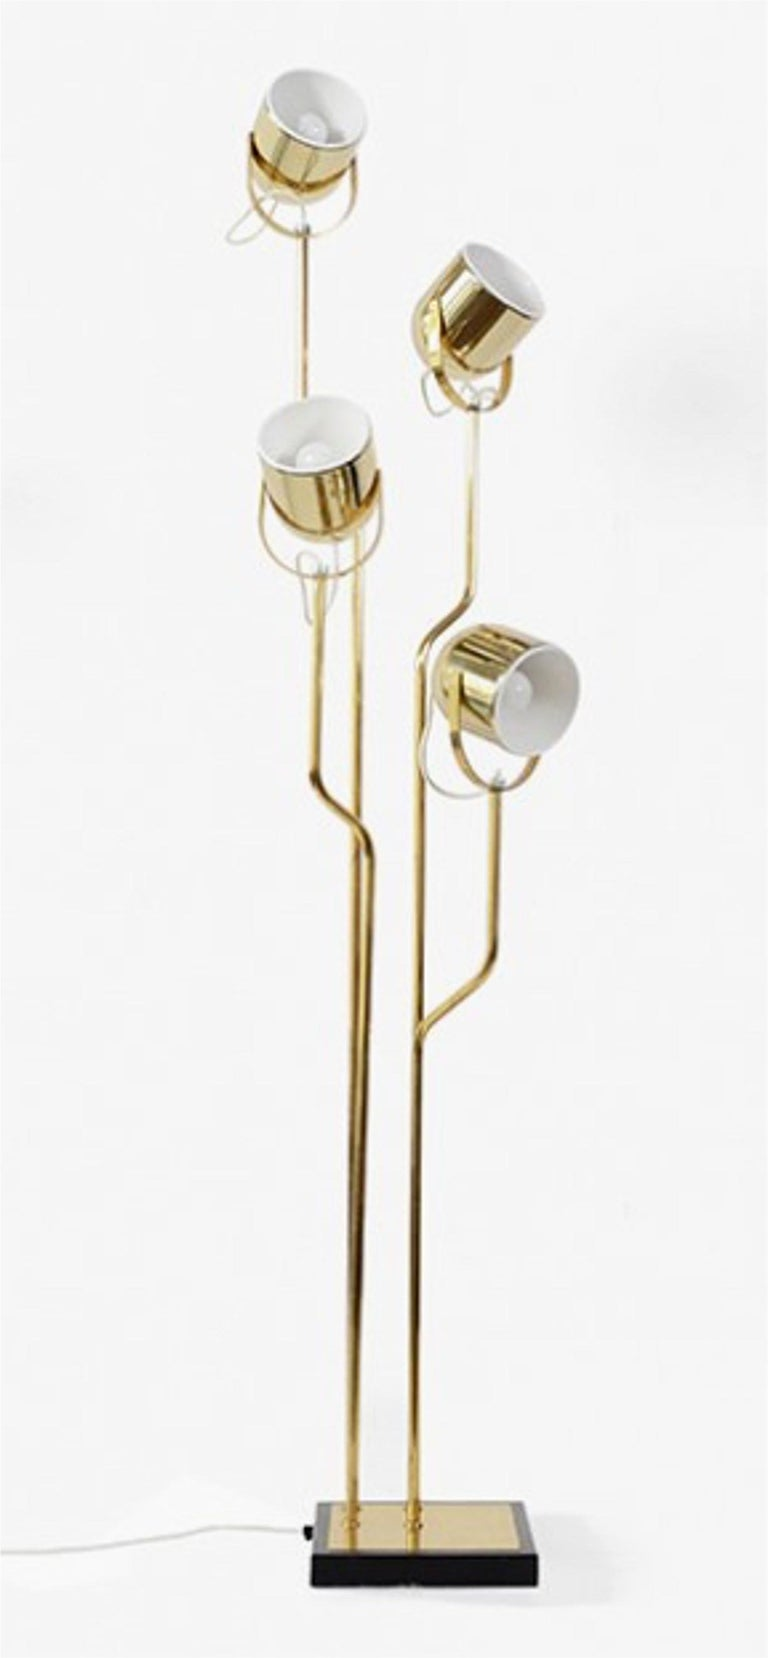 Four-arm adjustable head floor lamp in brass by Reggiani-Italy.  Enameled cast iron base with brass cover trim.